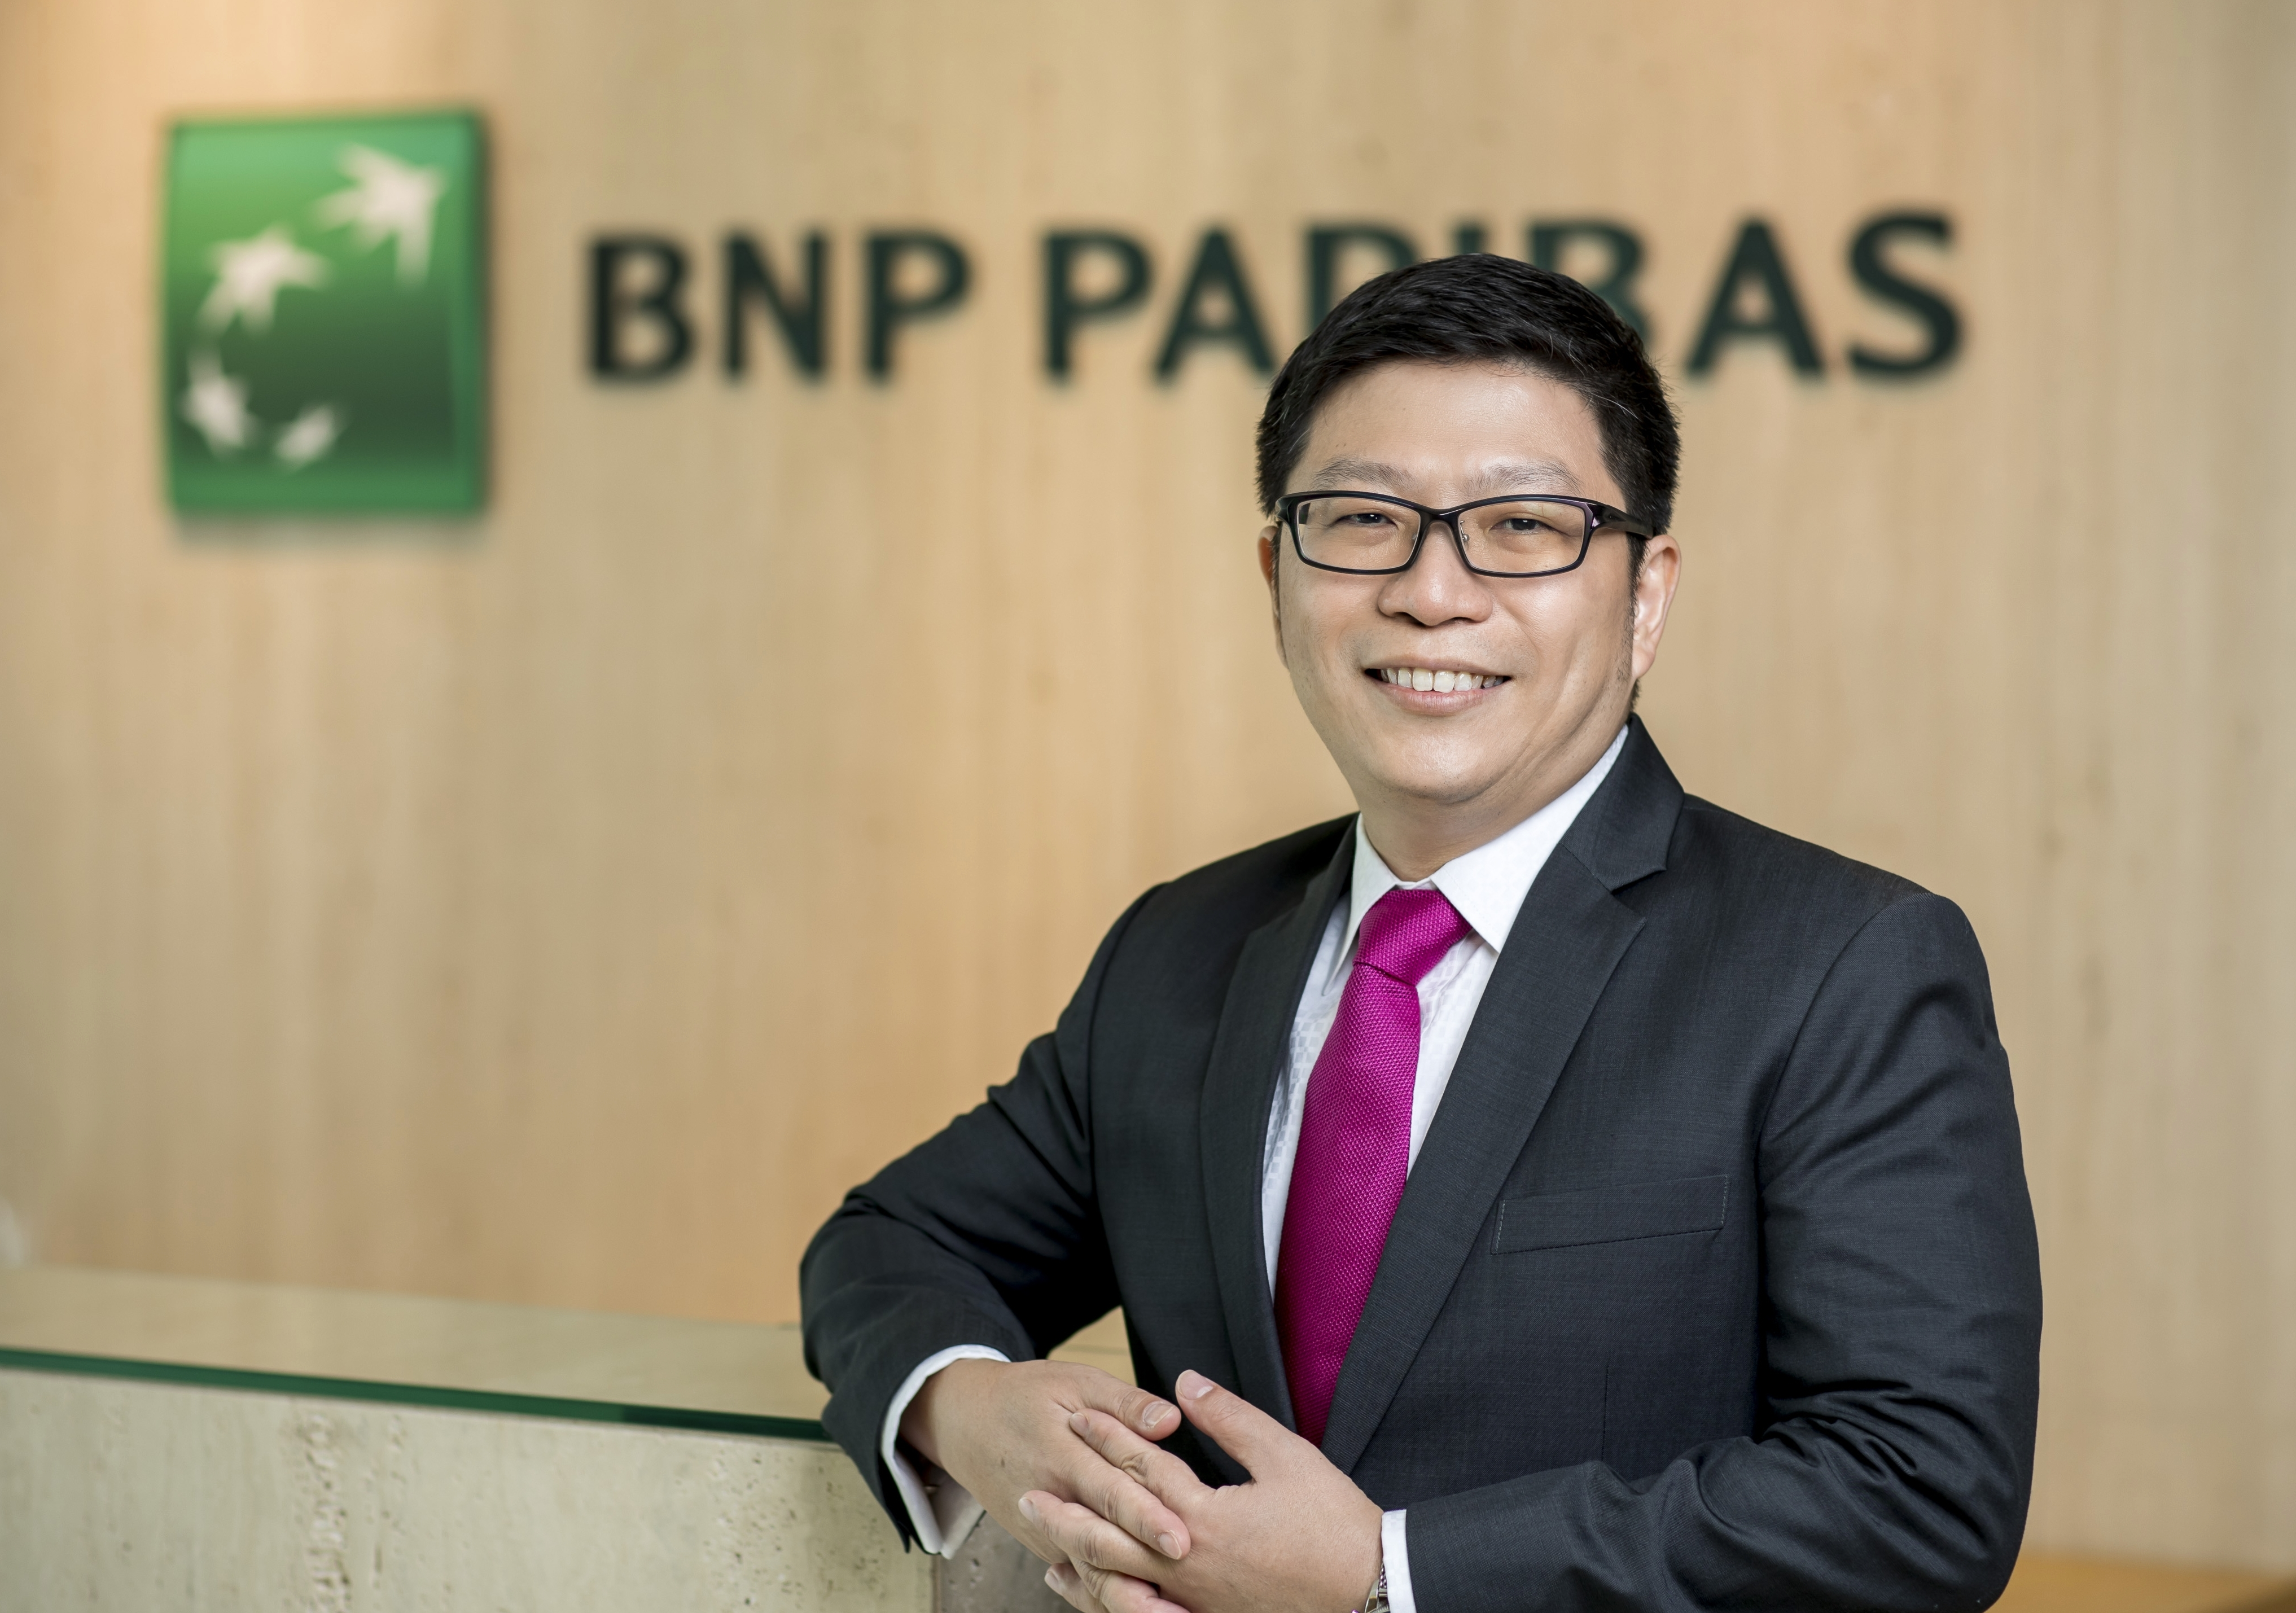 Edwin Chan, Head of Transaction Banking Products, Asia Pacific, BNP Paribas.